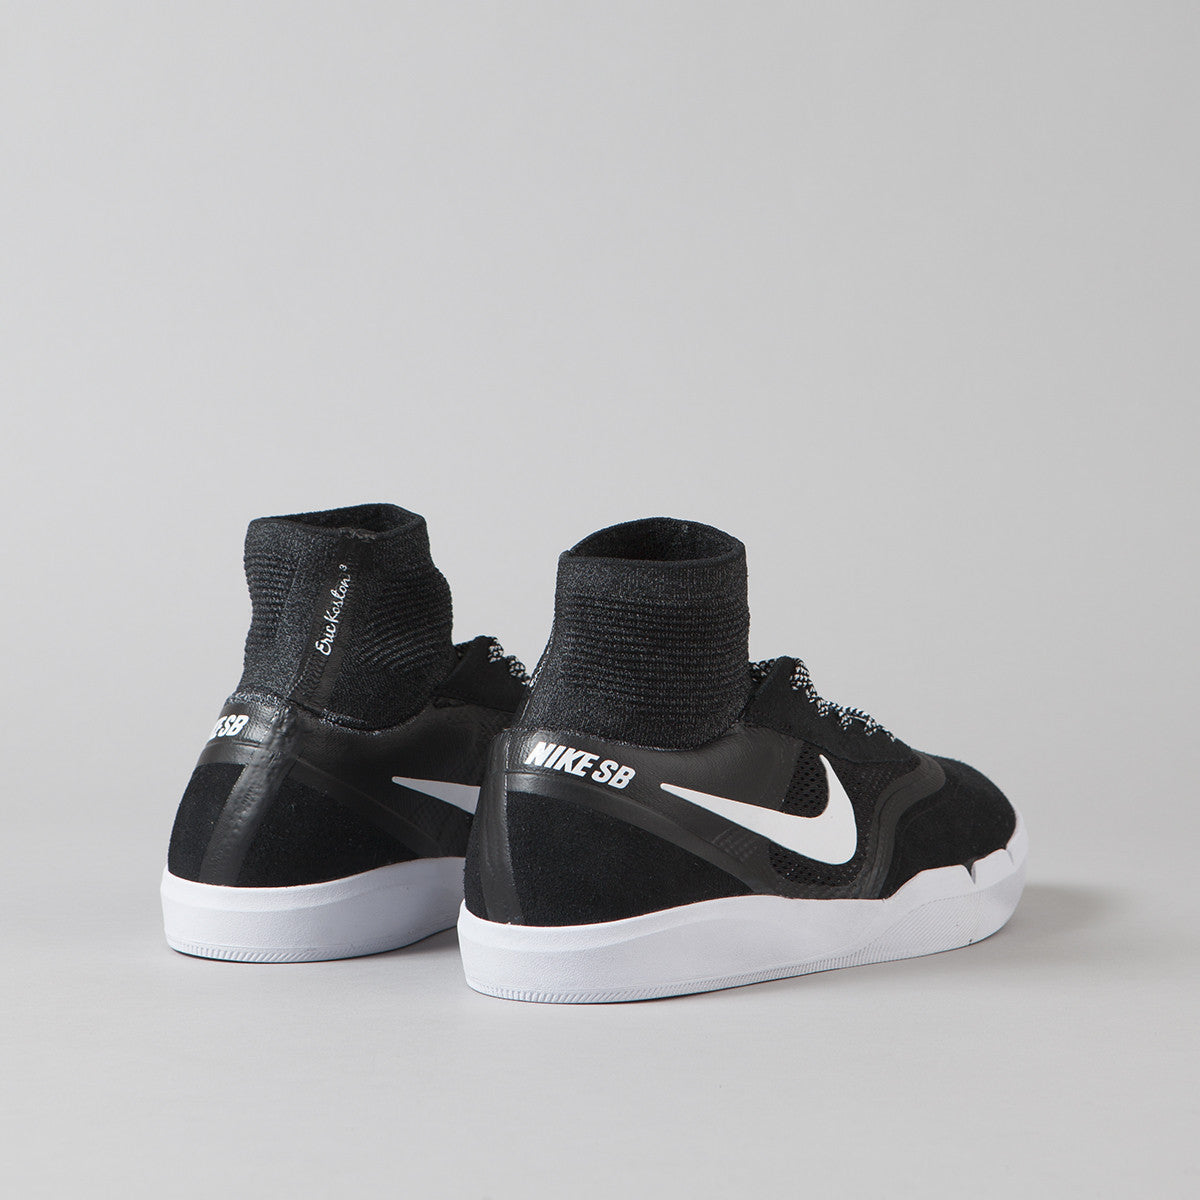 Nike SB Koston 3 Hyperfeel Shoes - Black / White